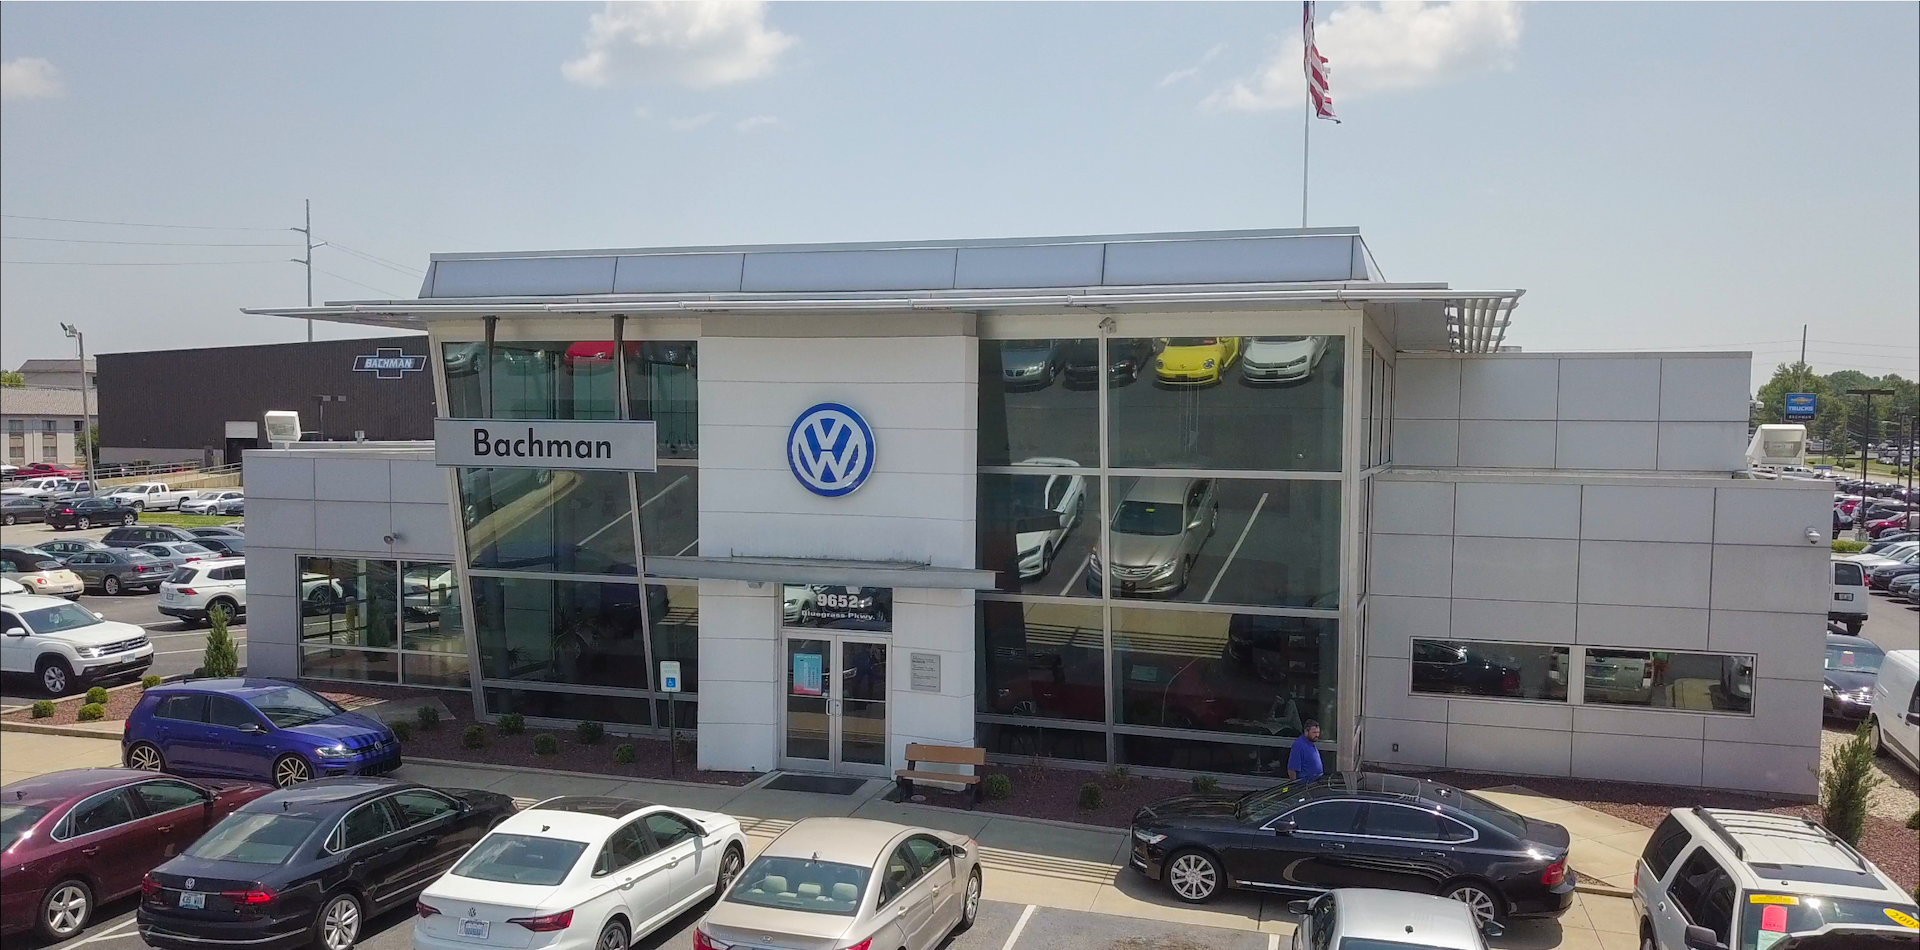 Welcome to Bachman Volkswagen